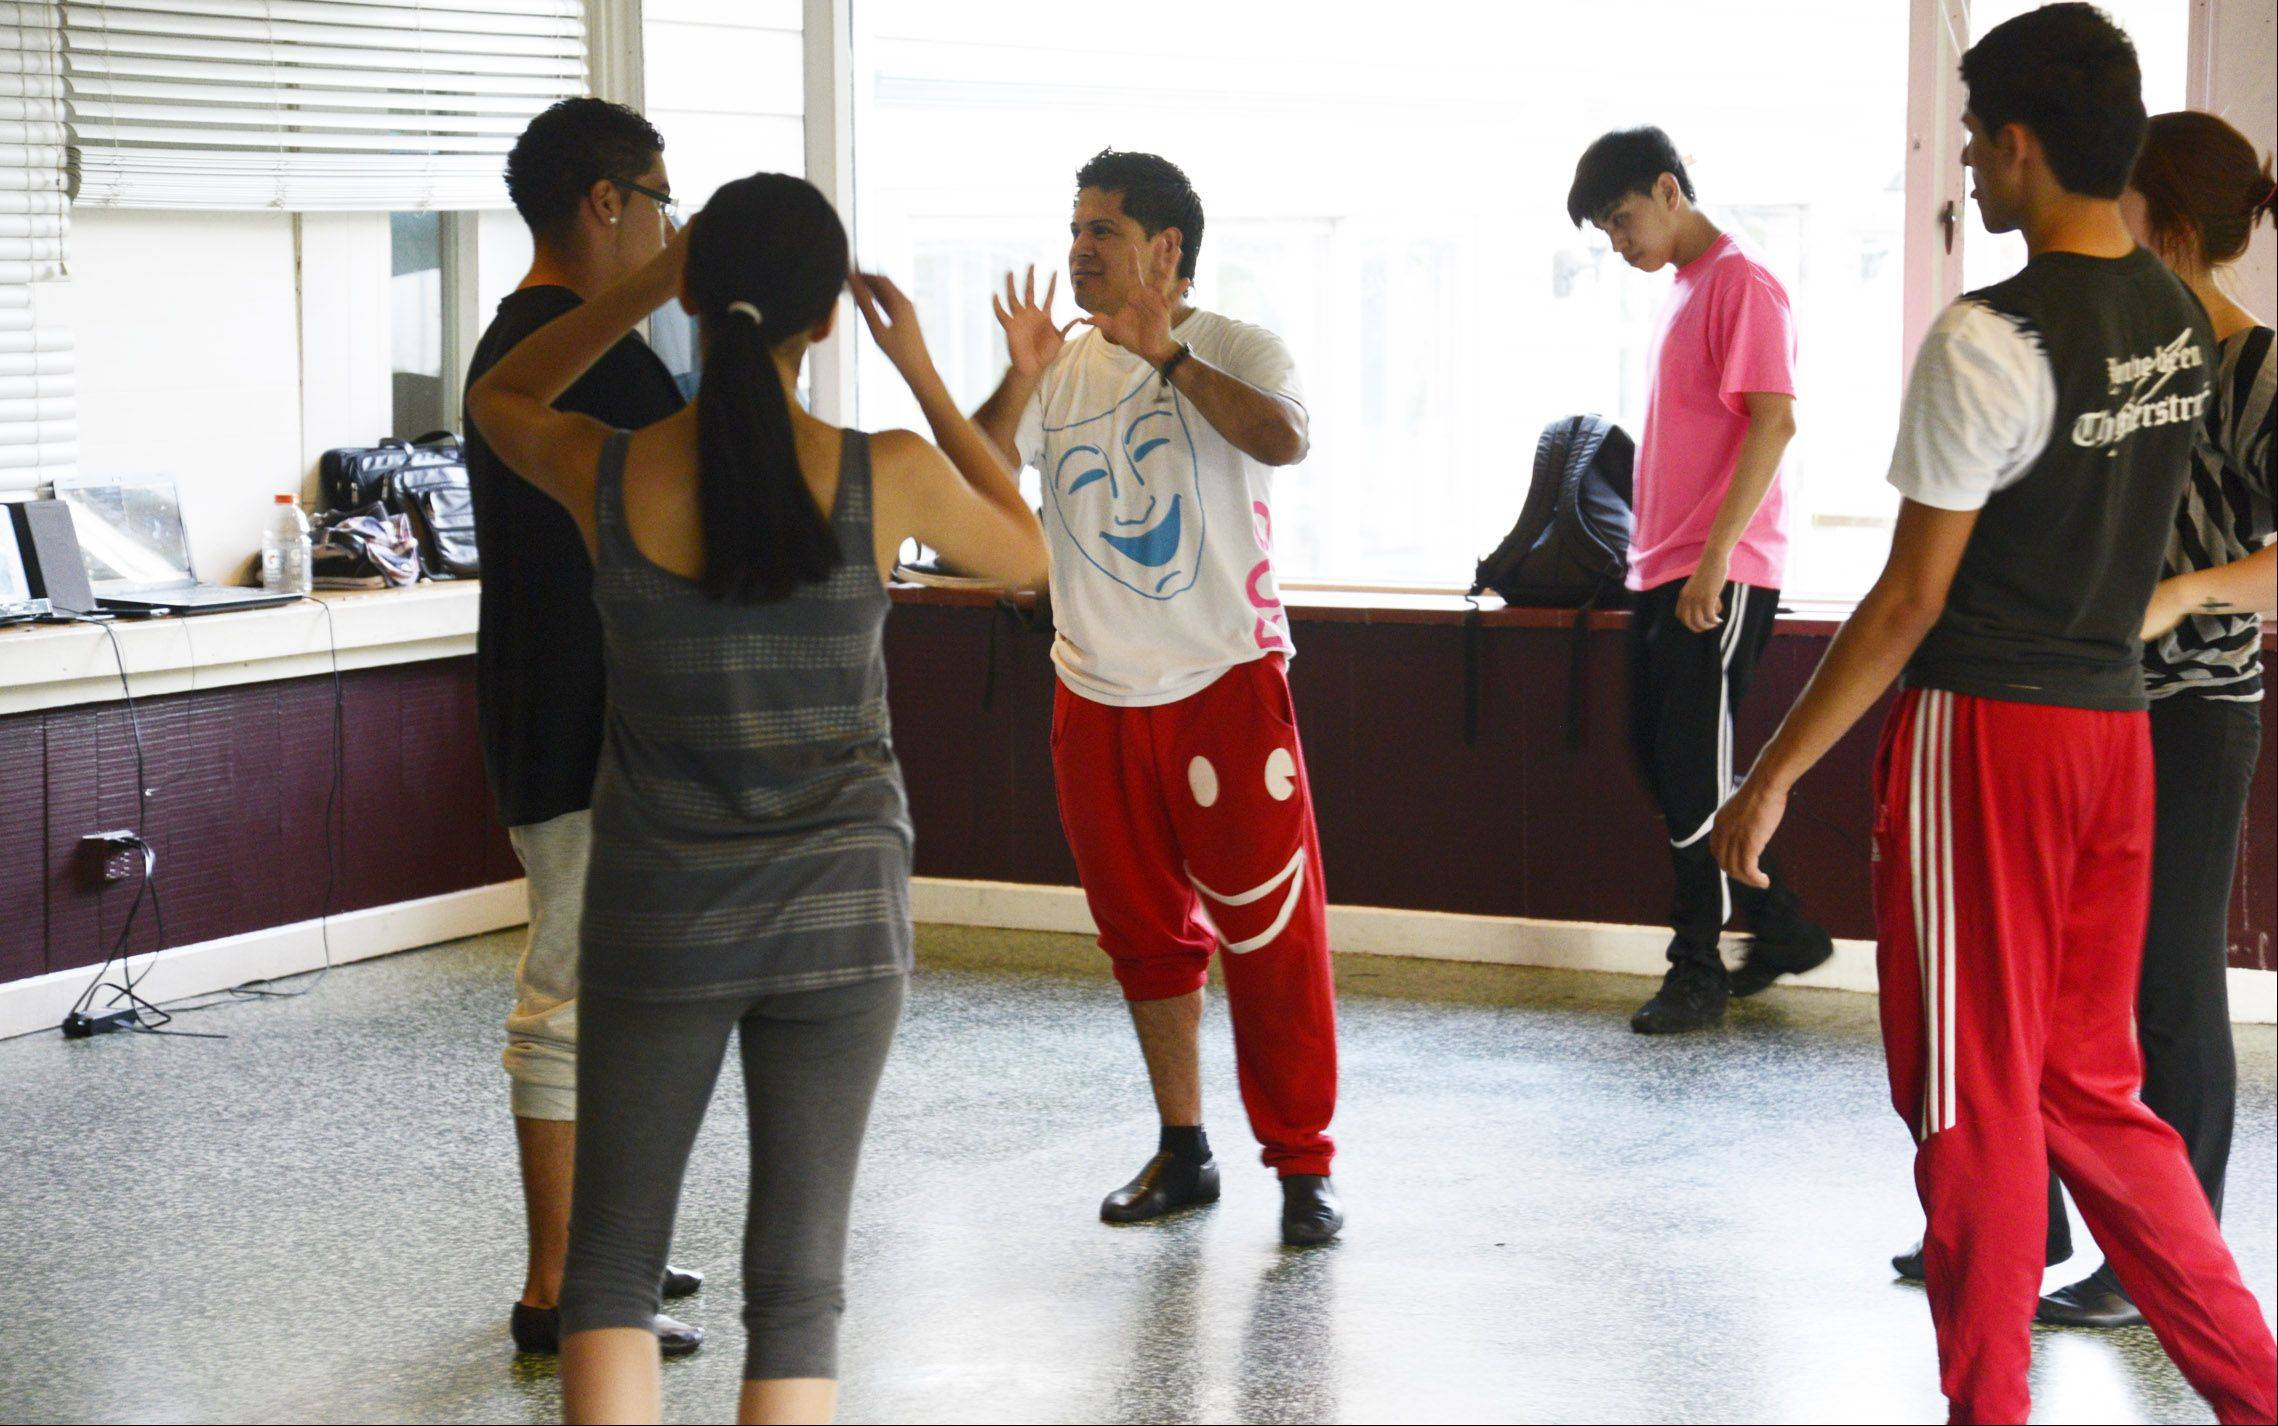 Ivan Moctezuma directs some of his 25 student dancers in his temporary studio in the Milk Pail banquet hall on Route 25 in East Dundee. Moctezuma and his brother, Angel, own and operate Ivangel Dance Studio.